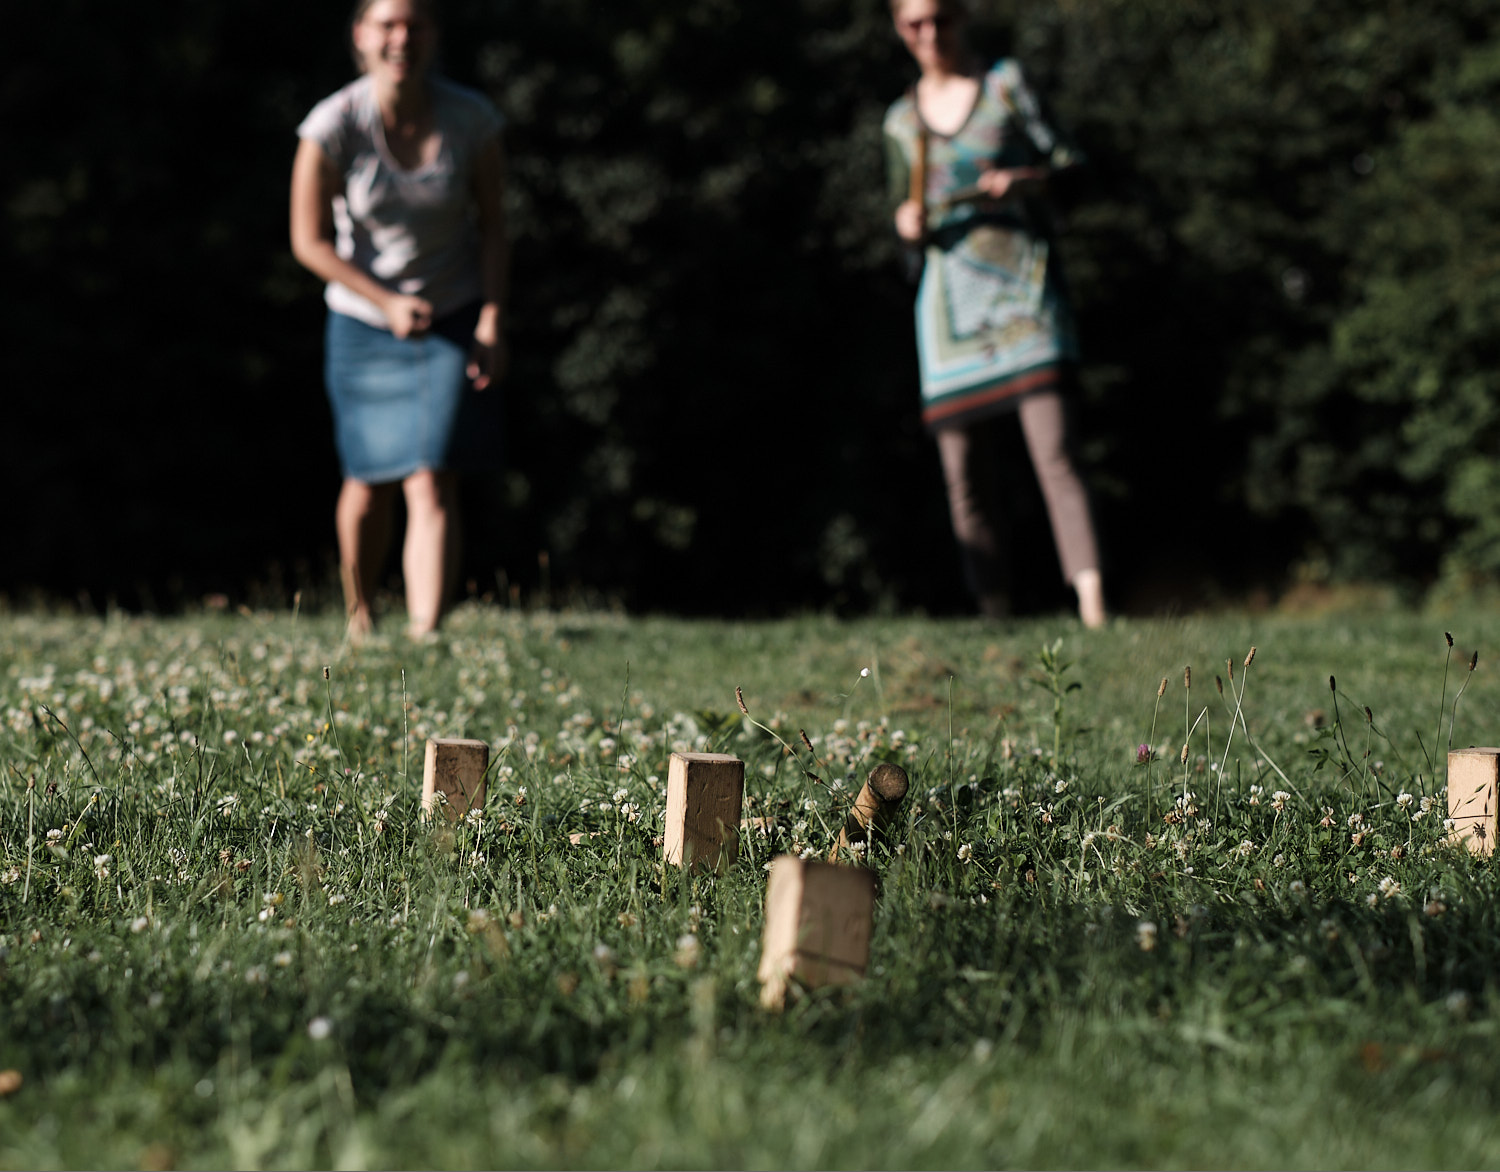 Summer, sun, friends, and game of Hub at the Feldmochingersee. Landing the stick close to the mark